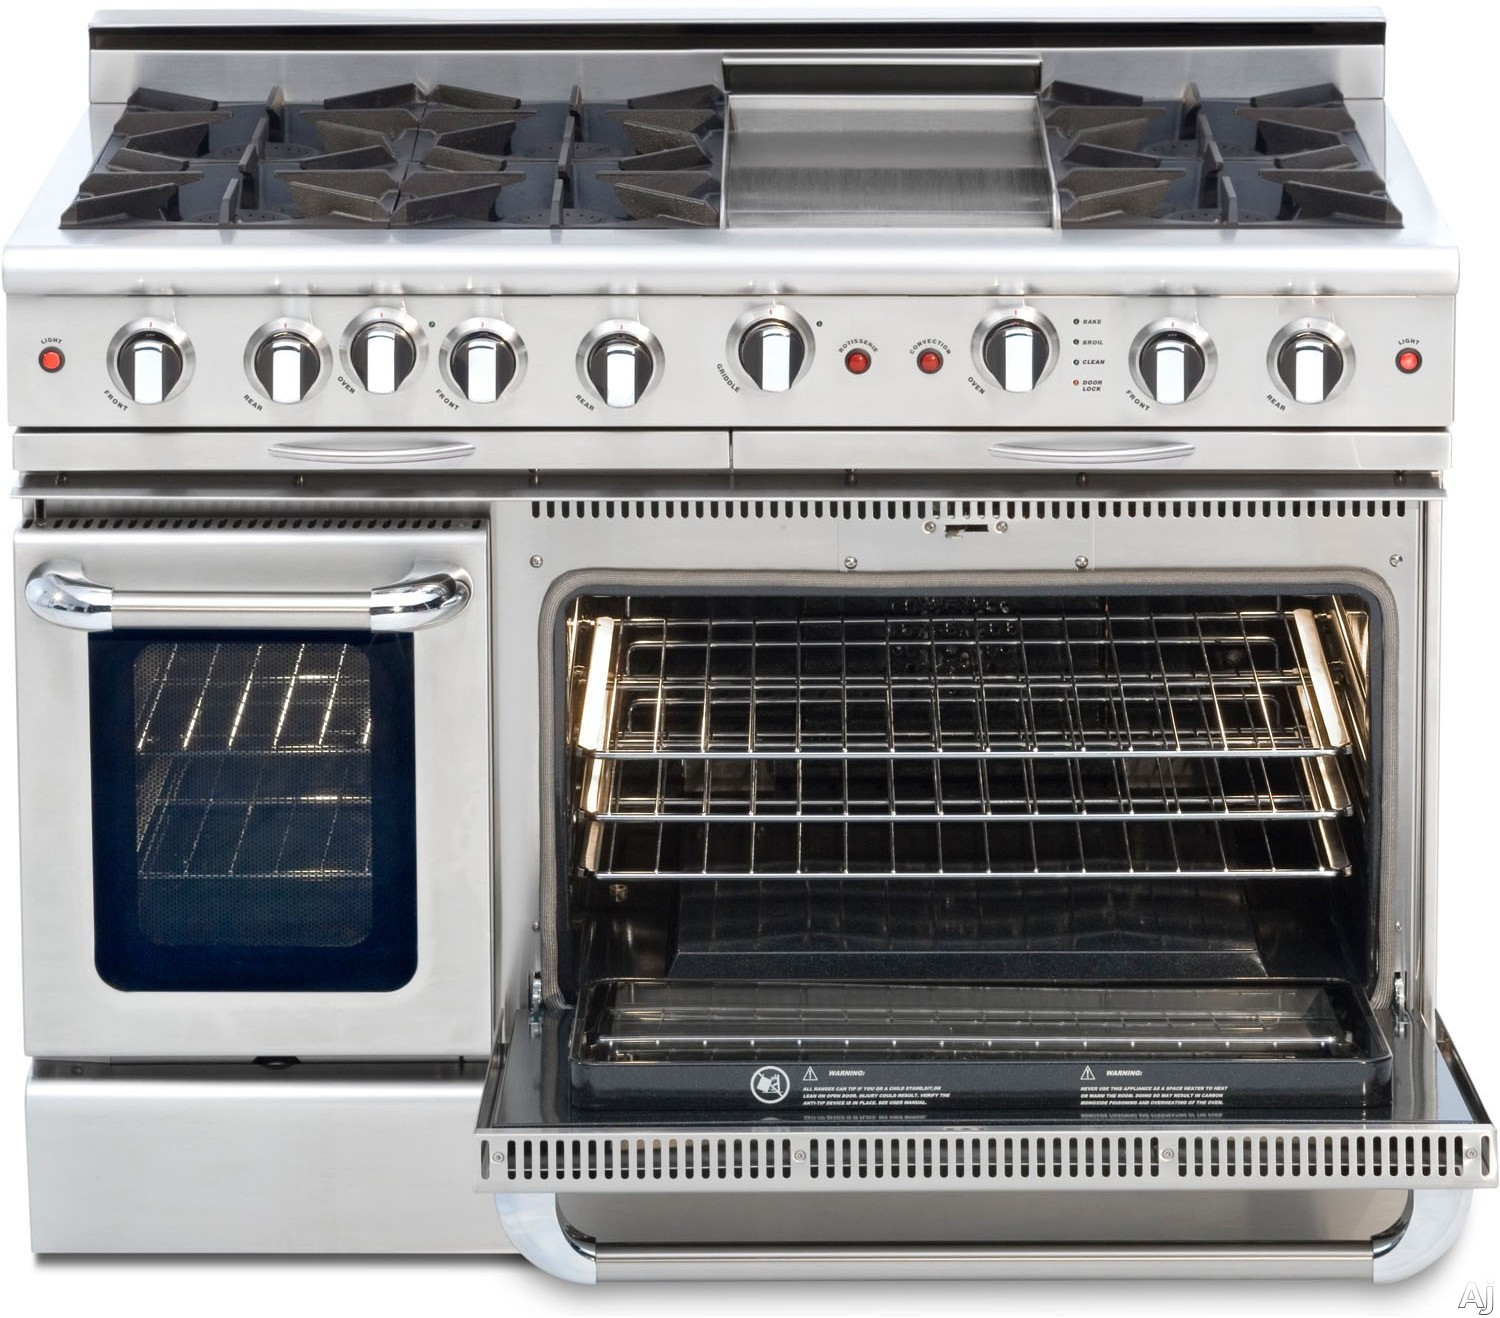 "Capital Culinarian Series CGSR484G2 48 Inch Pro-Style Gas Range with 6 Open Burners, 12"""" Thermo-Griddle, Moto-Rotisâ""¢ Rotisserie, Flex-Rollâ""¢ Oven Racks, EZ-Glidesâ""¢ Drip Trays, Stay-Coolâ""¢ Knobs, Self Clean, 4.6 cu. ft. Convection Oven and 2.1 cu."